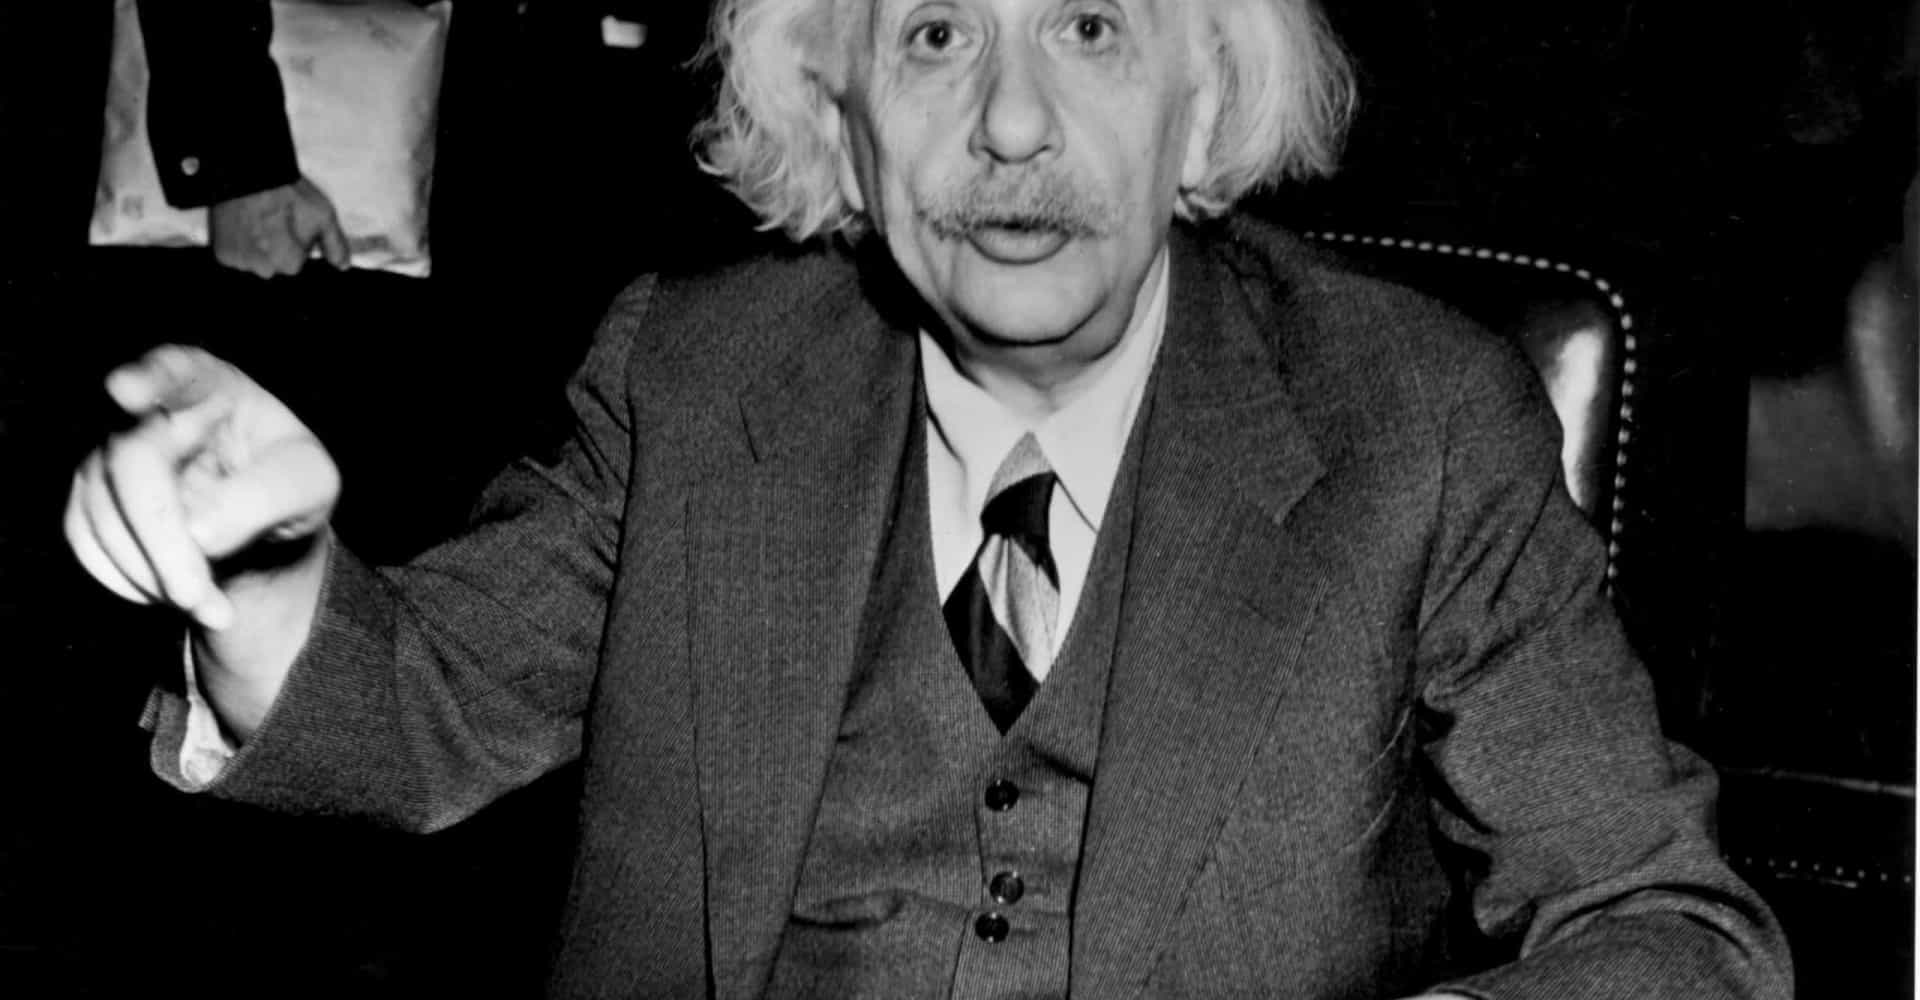 Dive into the creative and brilliant mind of Albert Einstein